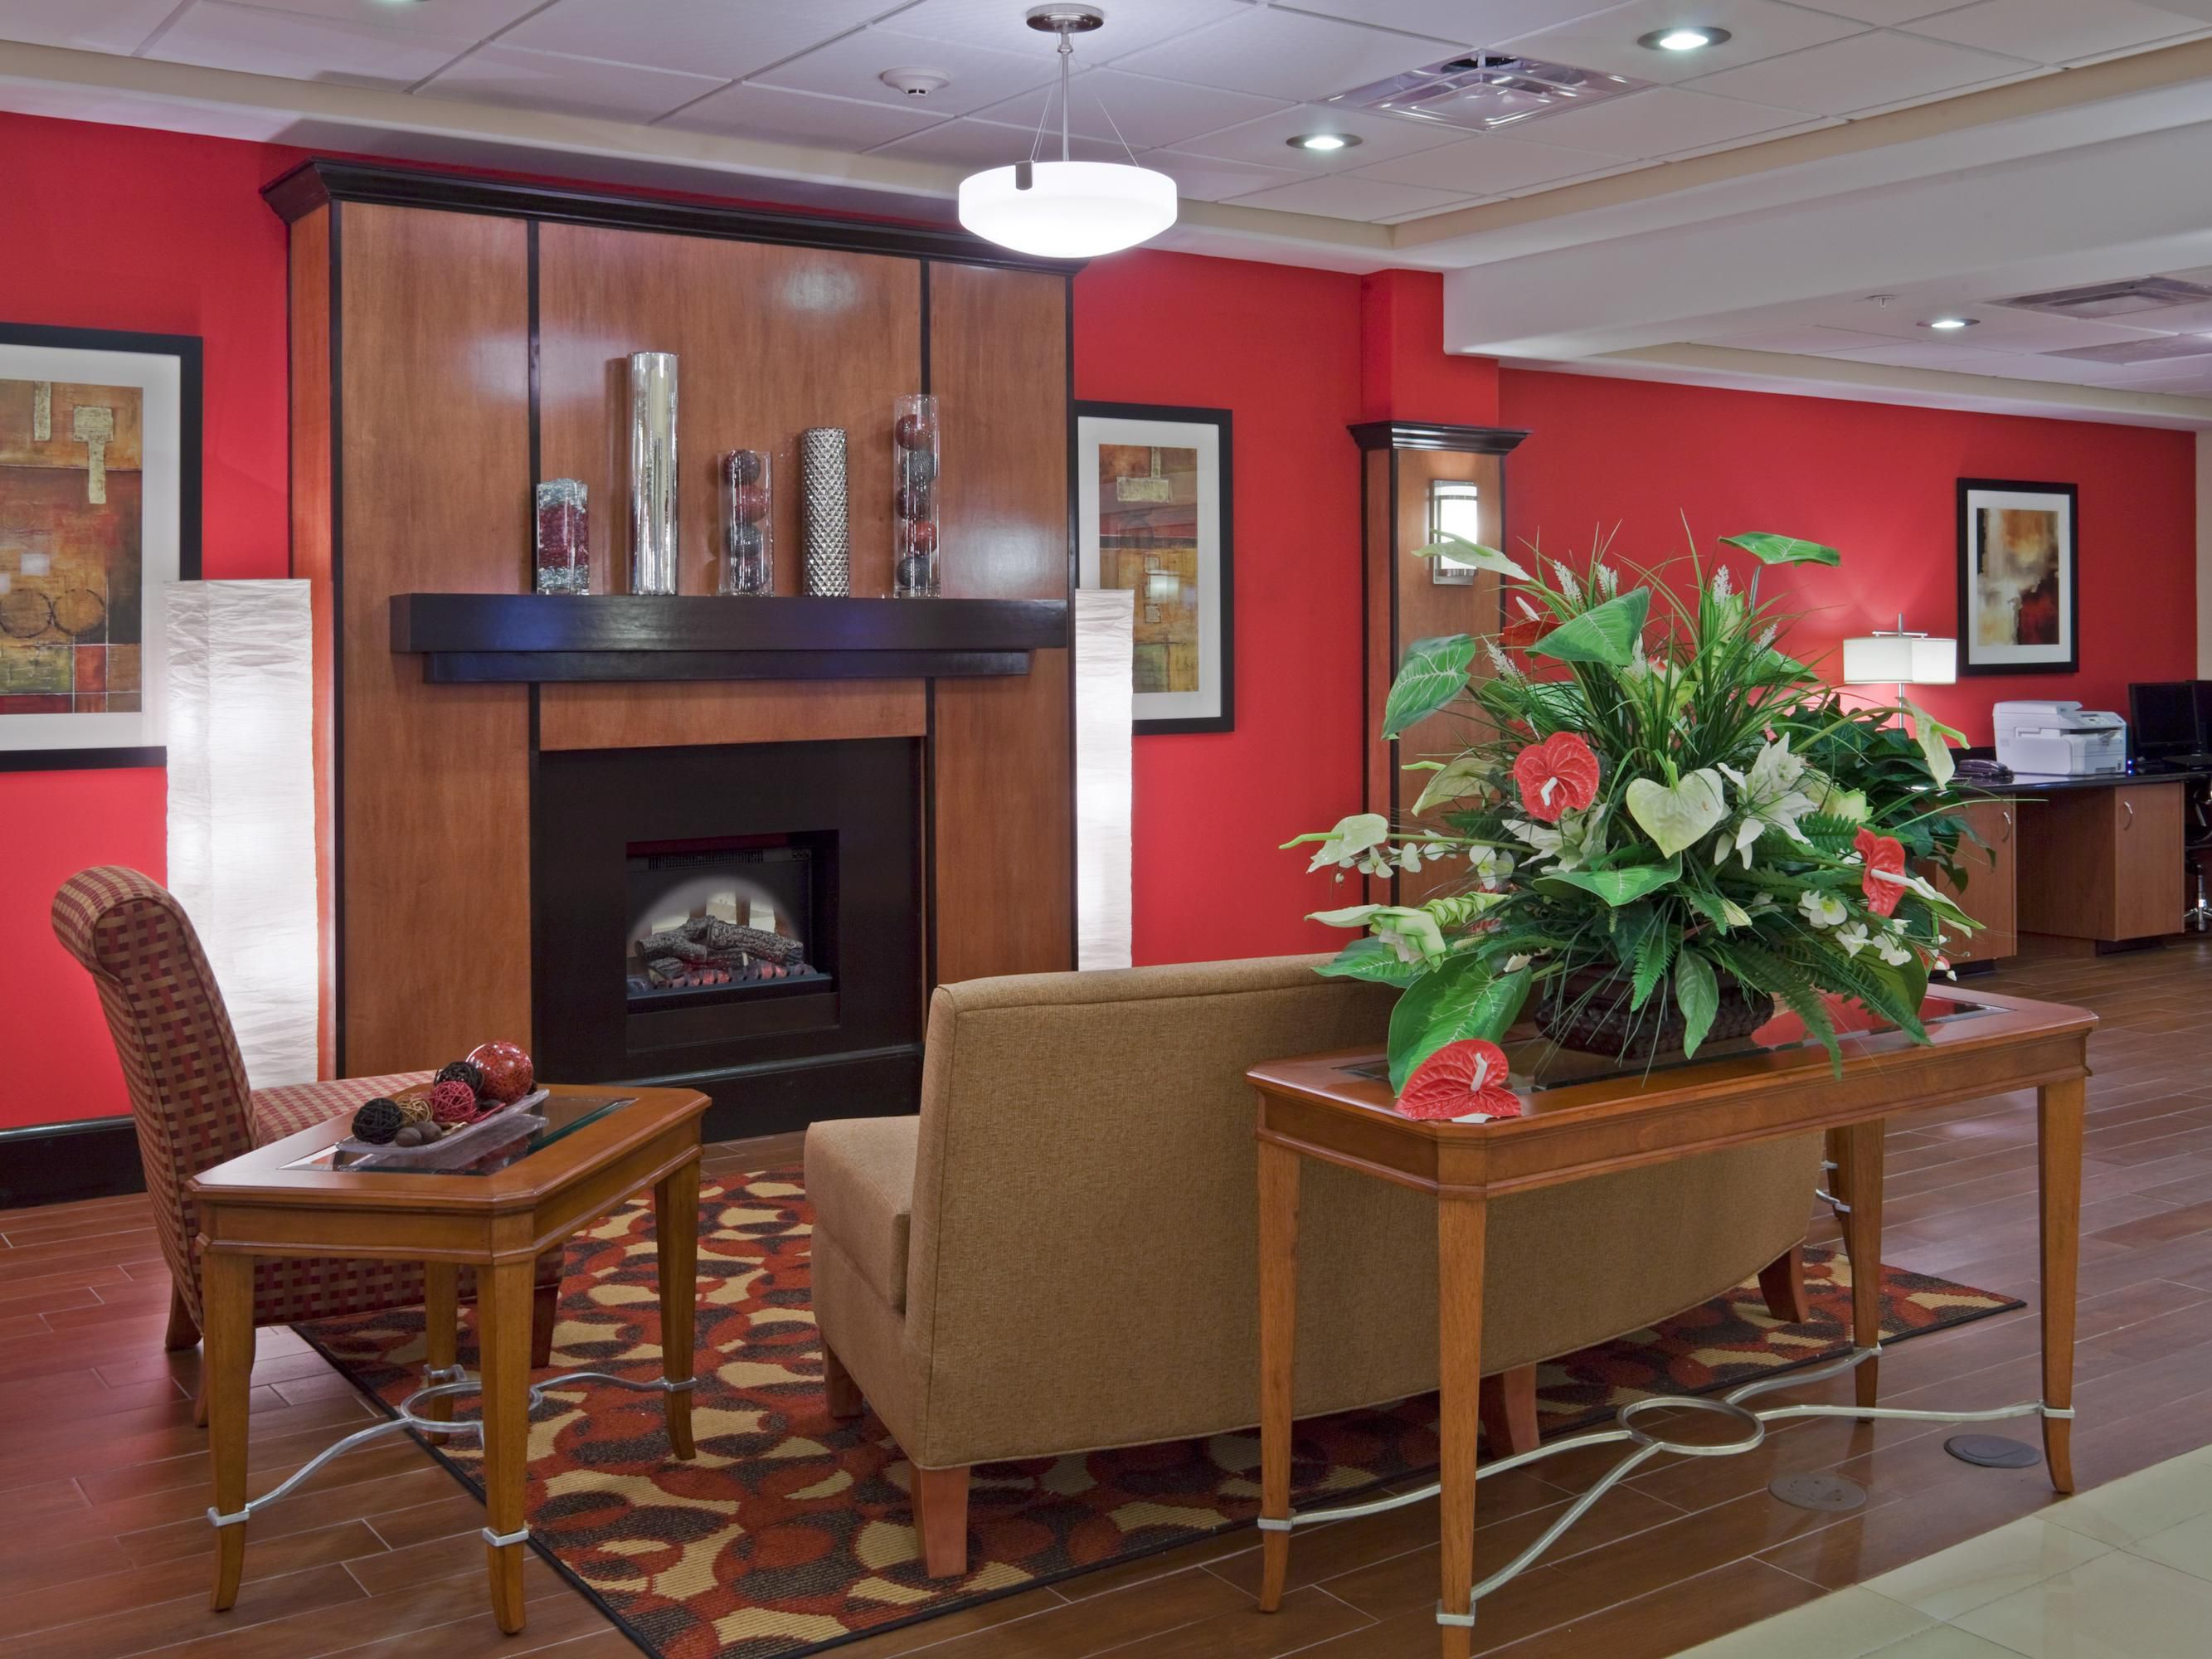 Holiday Inn Express Bainbridge, GA lobby Seating Area